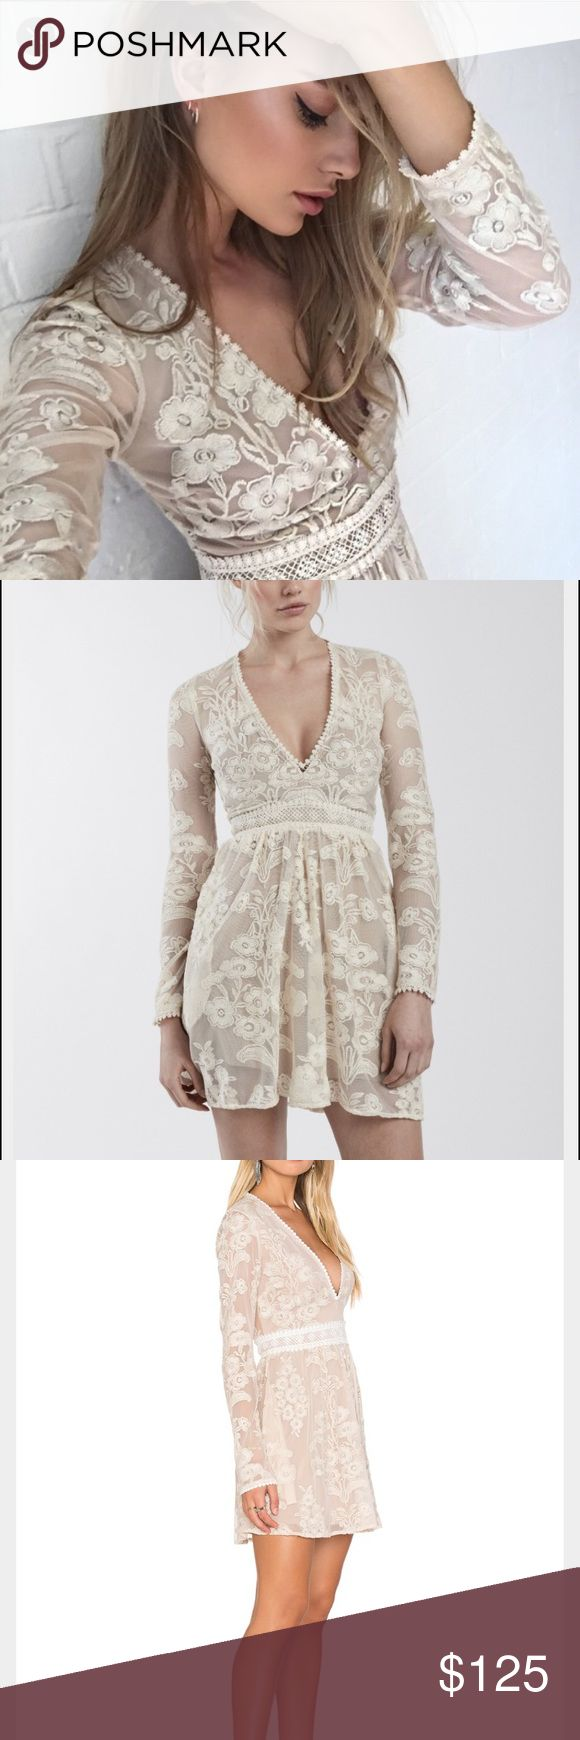 For Love and Lemons Violetta Mini Size XS Beautiful white and nude mini lace dress by For Love and Lemons. This dress has never been worn. Fully lined. Size XS. For Love And Lemons Dresses Mini